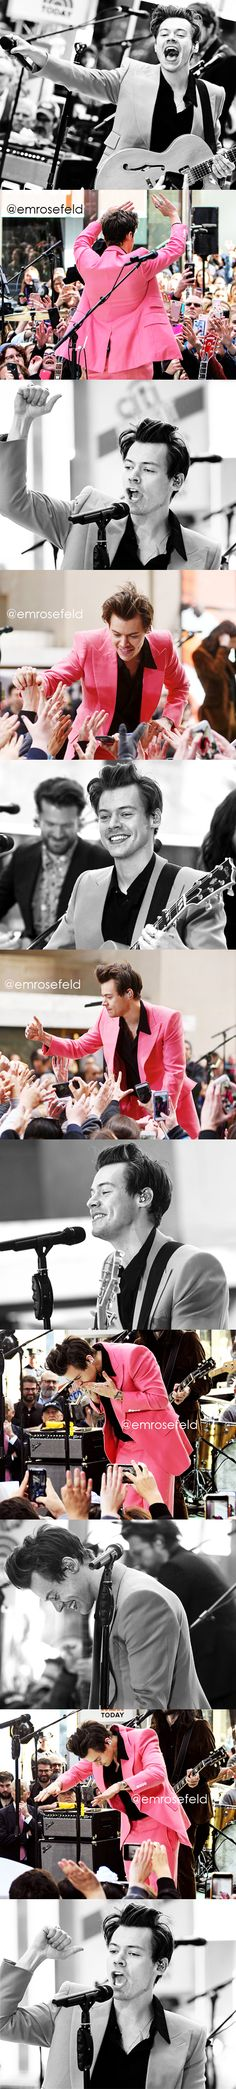 Harry Styles | on the Today Show 5.9.17 | emrosefeld |